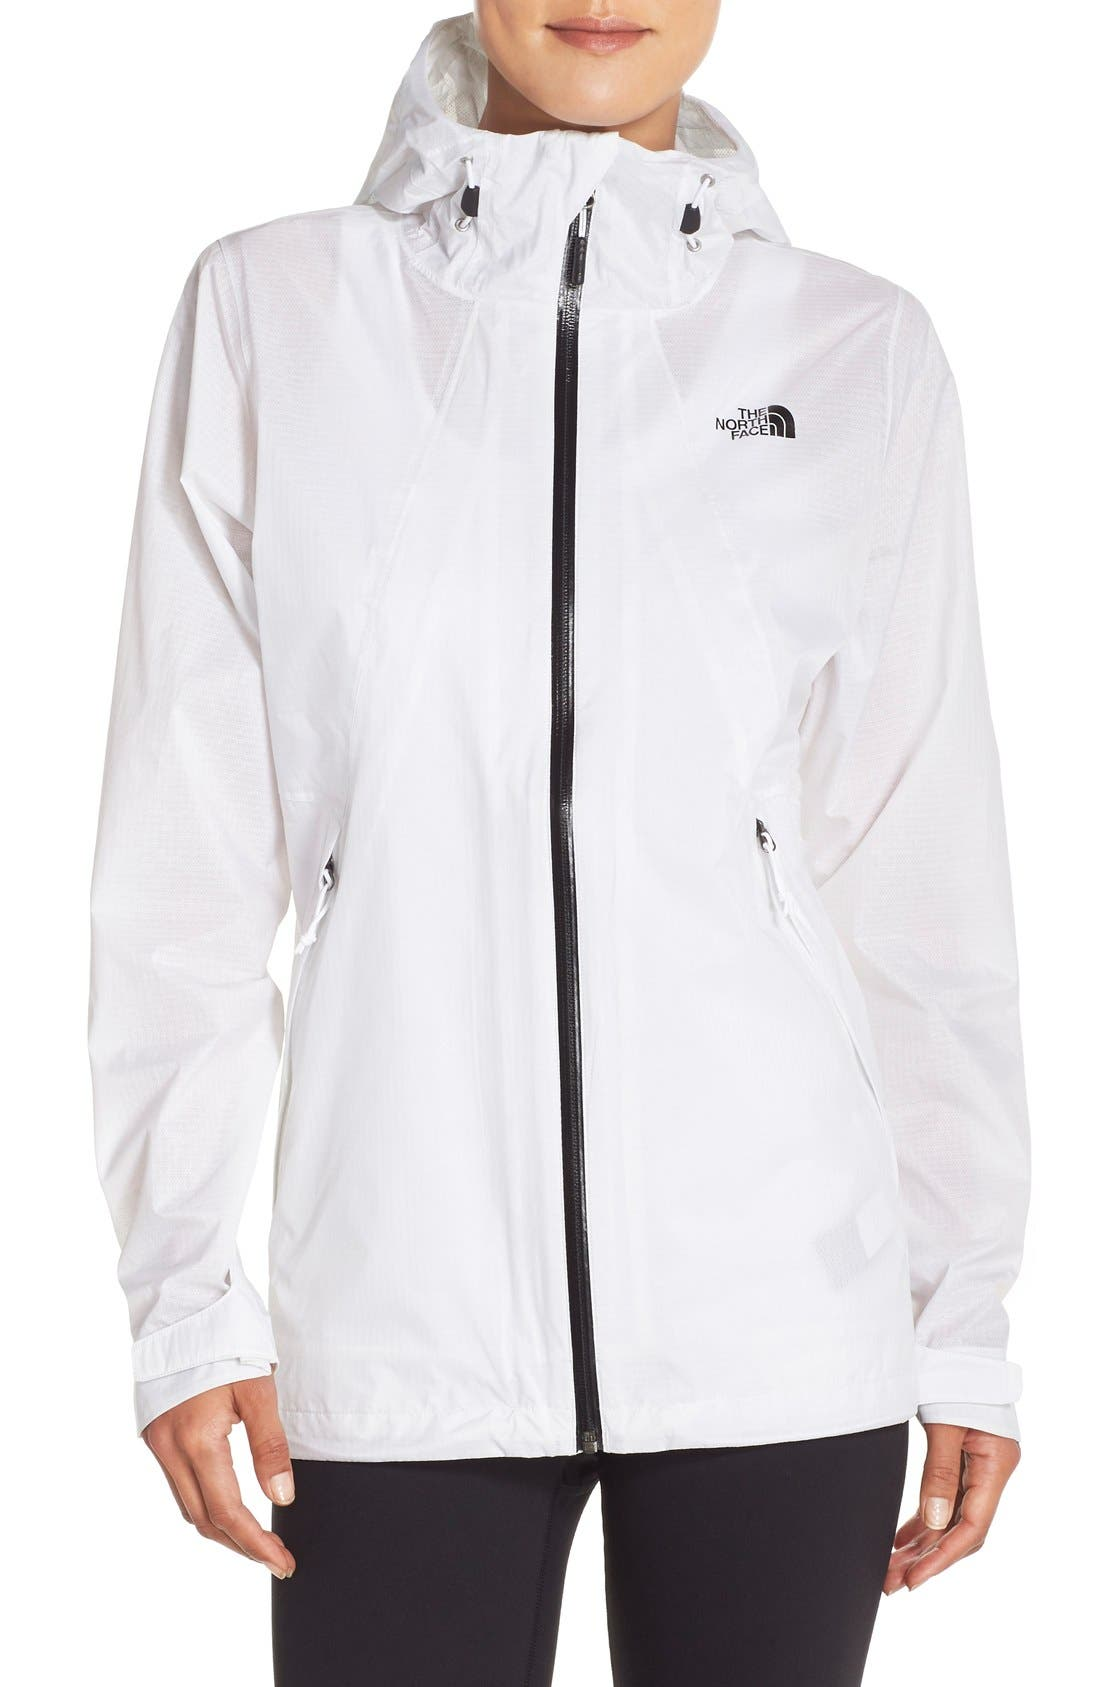 Main Image - The North Face 'Venture Fastpack' Waterproof Jacket